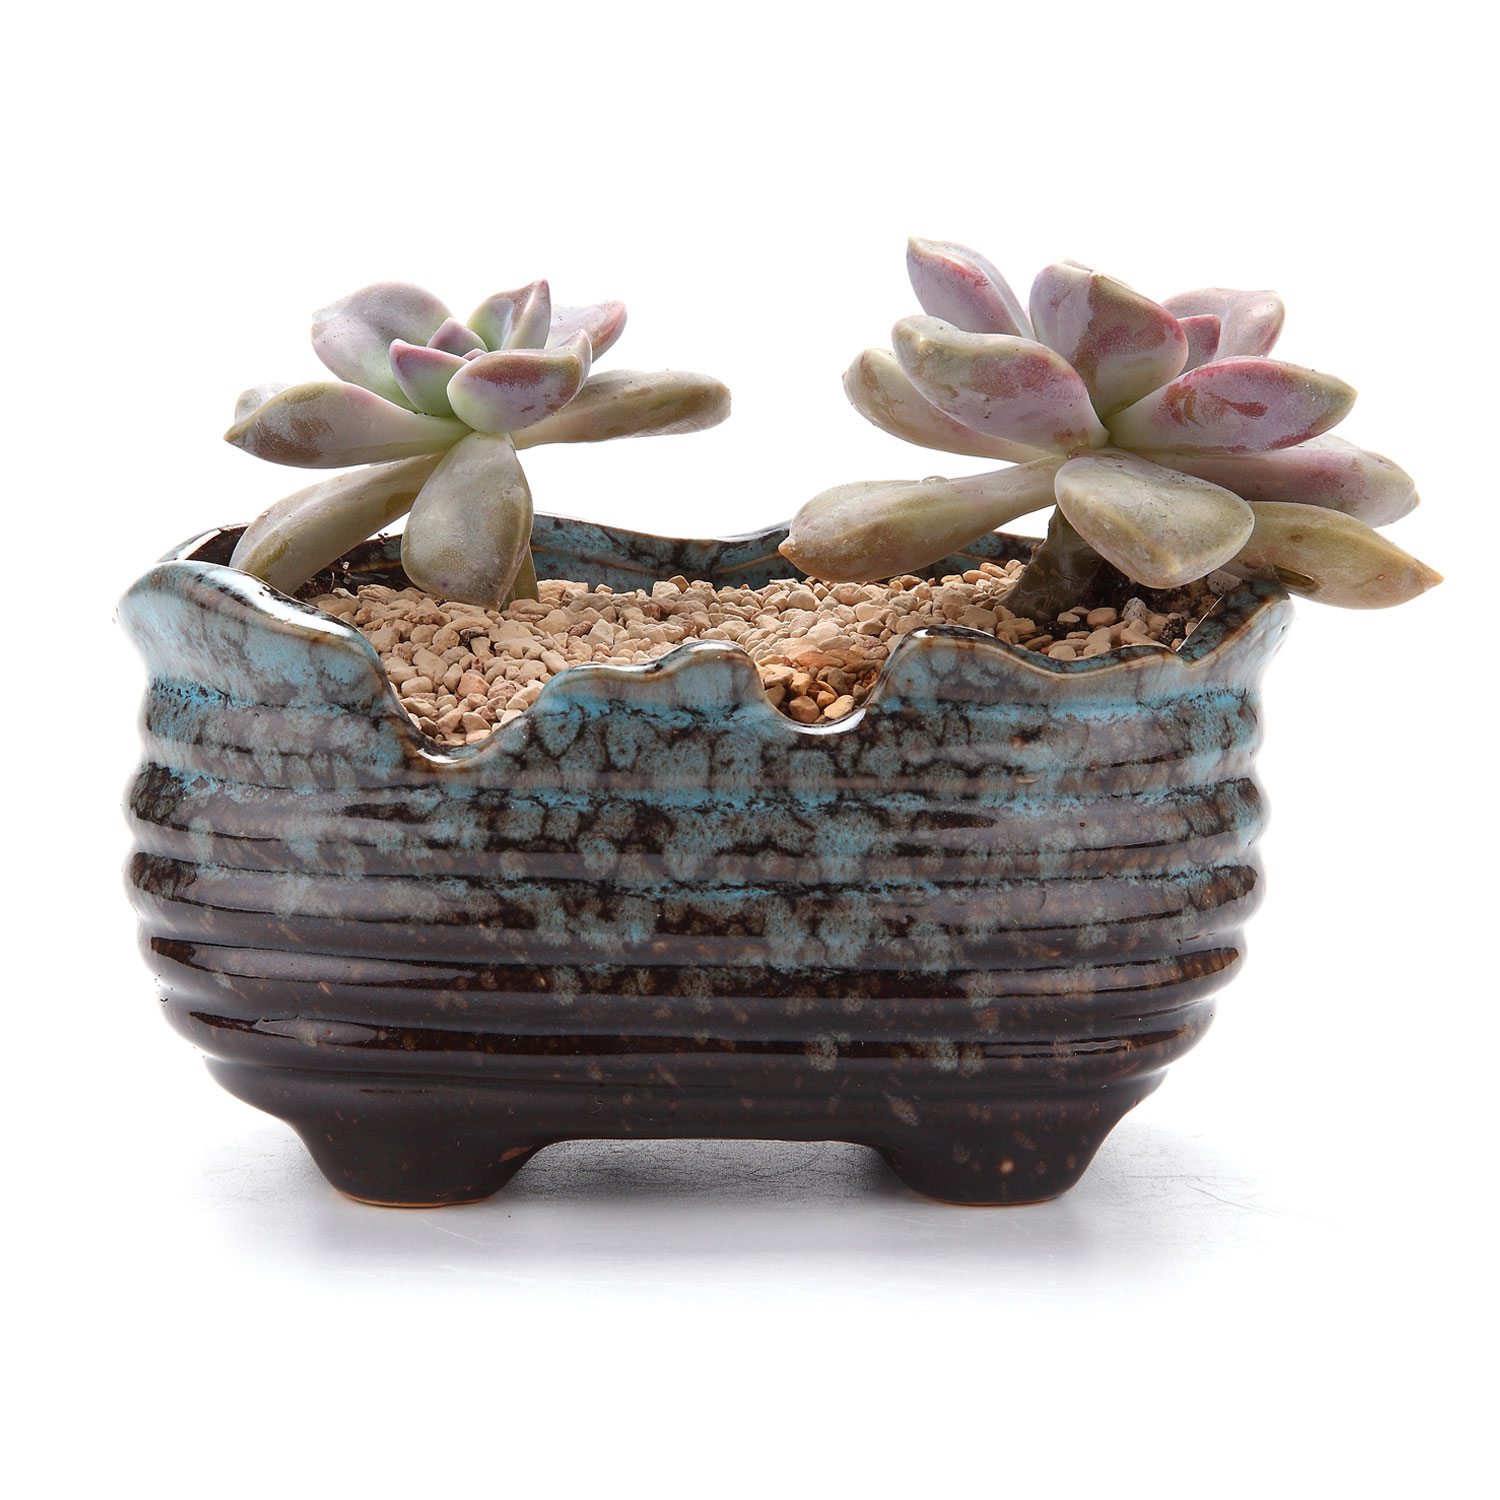 Cactus Planters Pottery T4u 10 14cm Air Bubble Glaze Square Ceramic Succulent